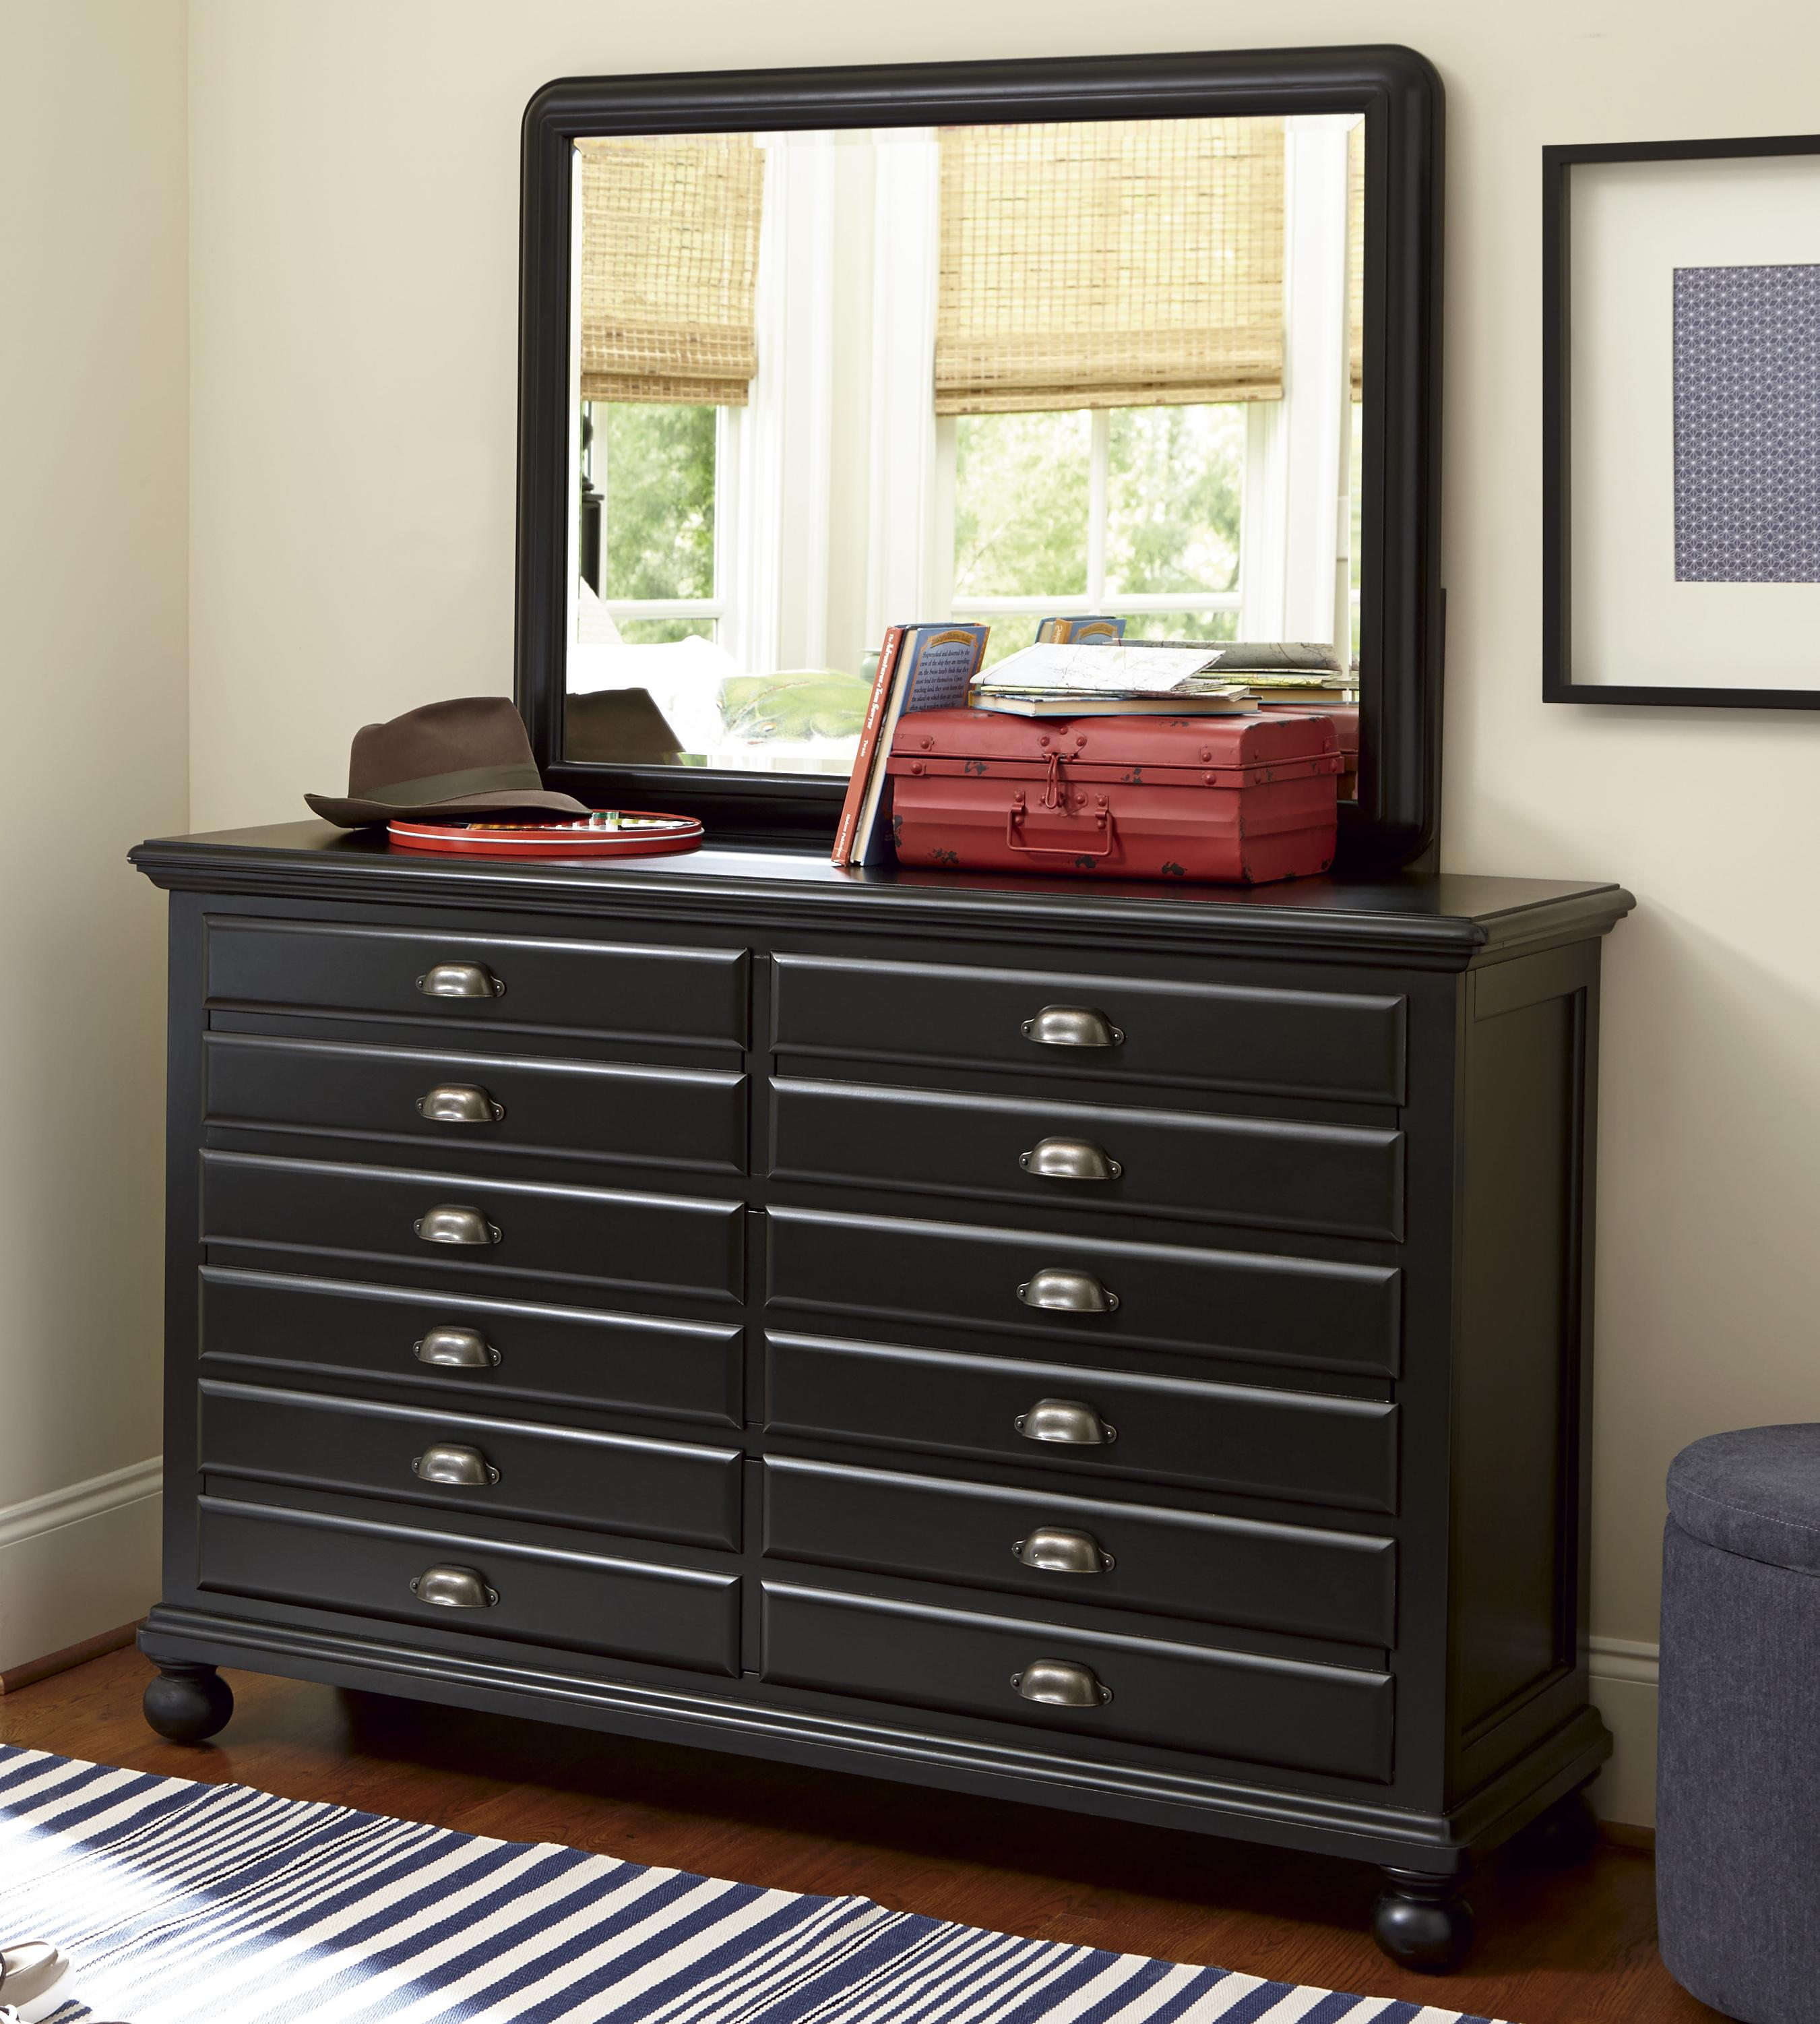 Smartstuff Black and White Dresser and Mirror Comho - Item Number: 437B032+003